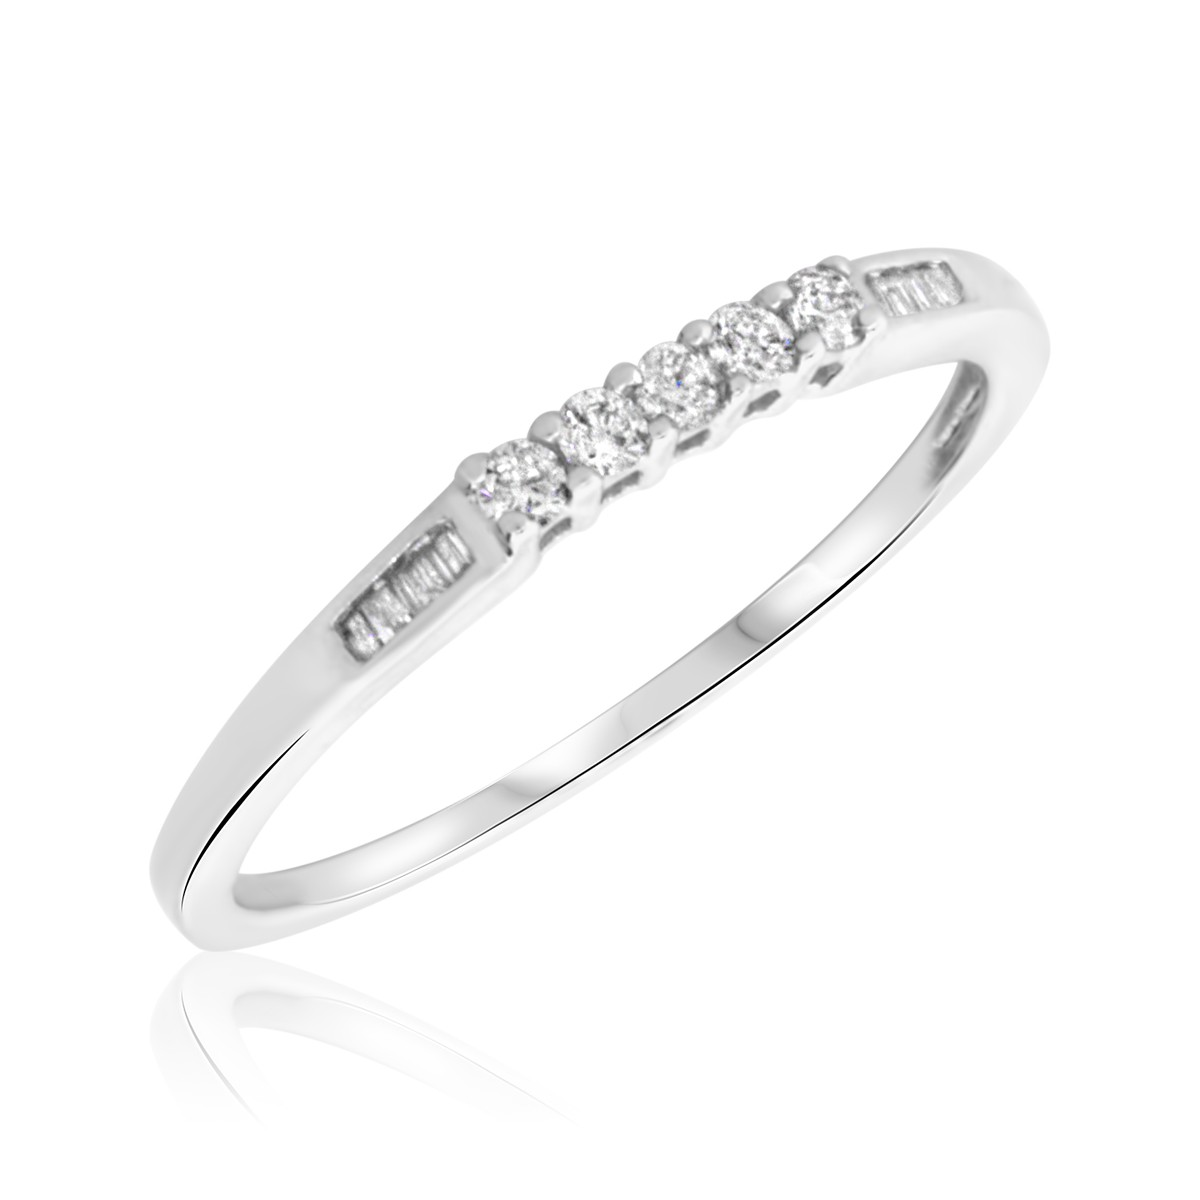 1/6 Carat T.W. Round, Baguette Cut Diamond Ladies Wedding Band 10K White Gold